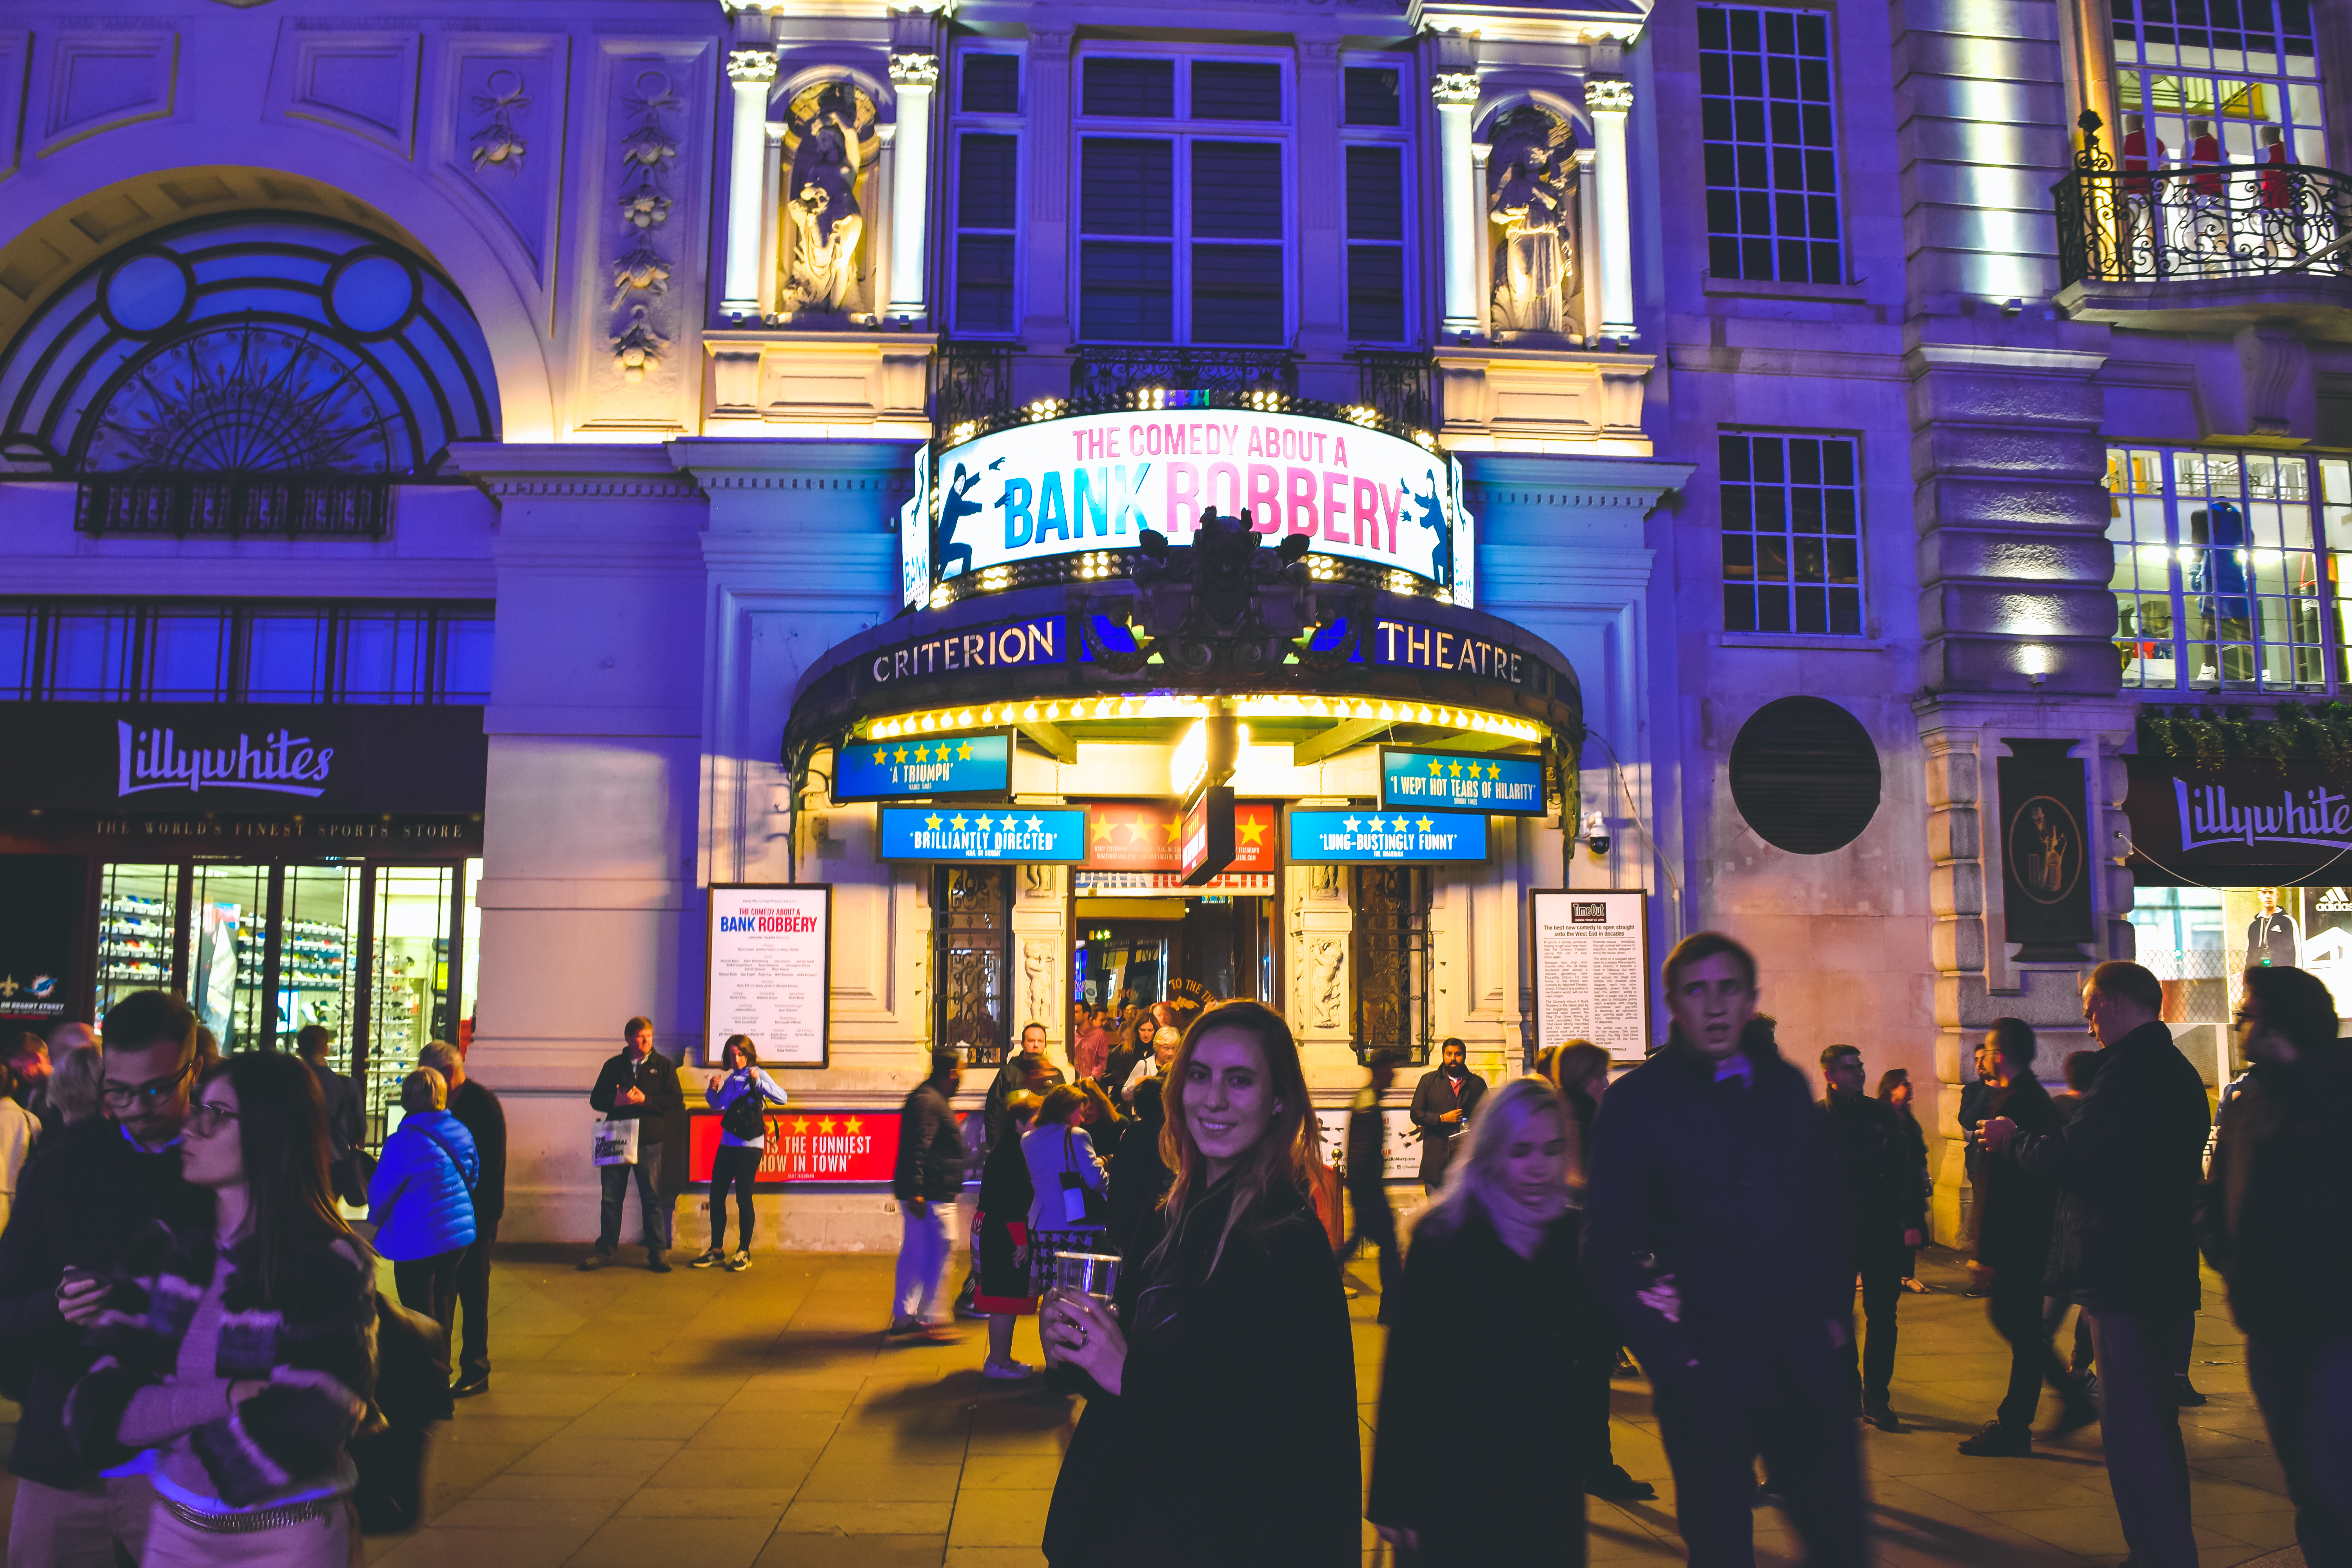 West End Theatre Comedy About A Bank Robbery Travel guide to london uk blog what to do what to see where to go 3 days-45